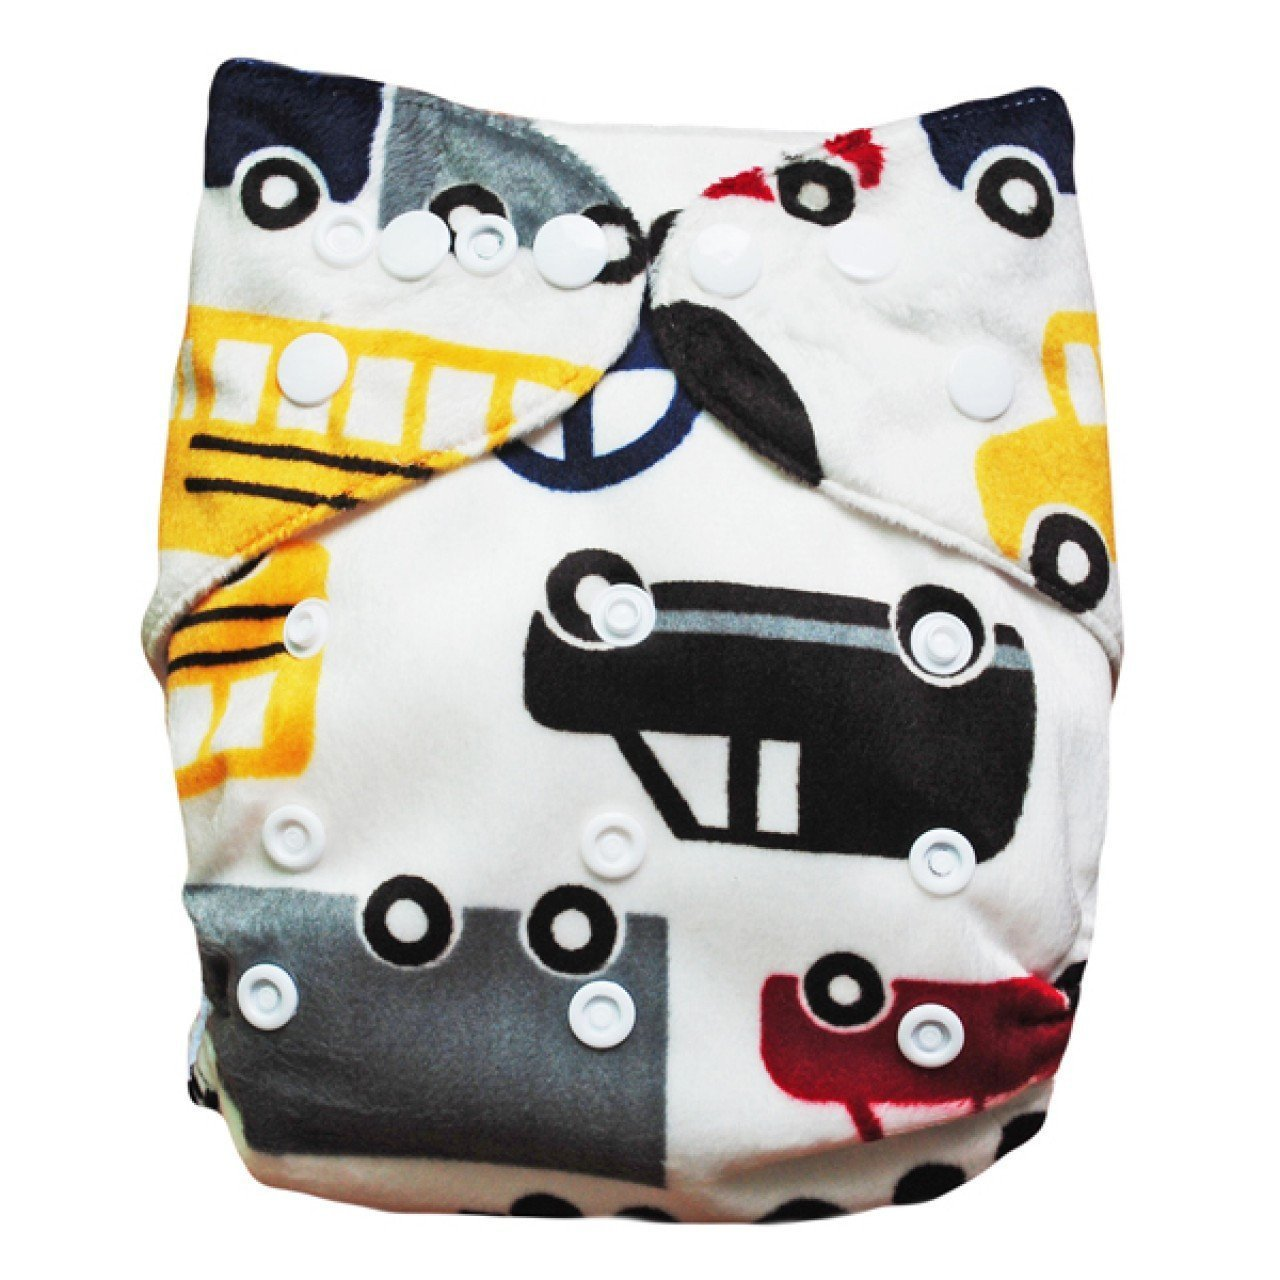 Express the Best Cloth Re-usable Nappy Pack - Cars & Transport - Naked Baby Eco Boutique